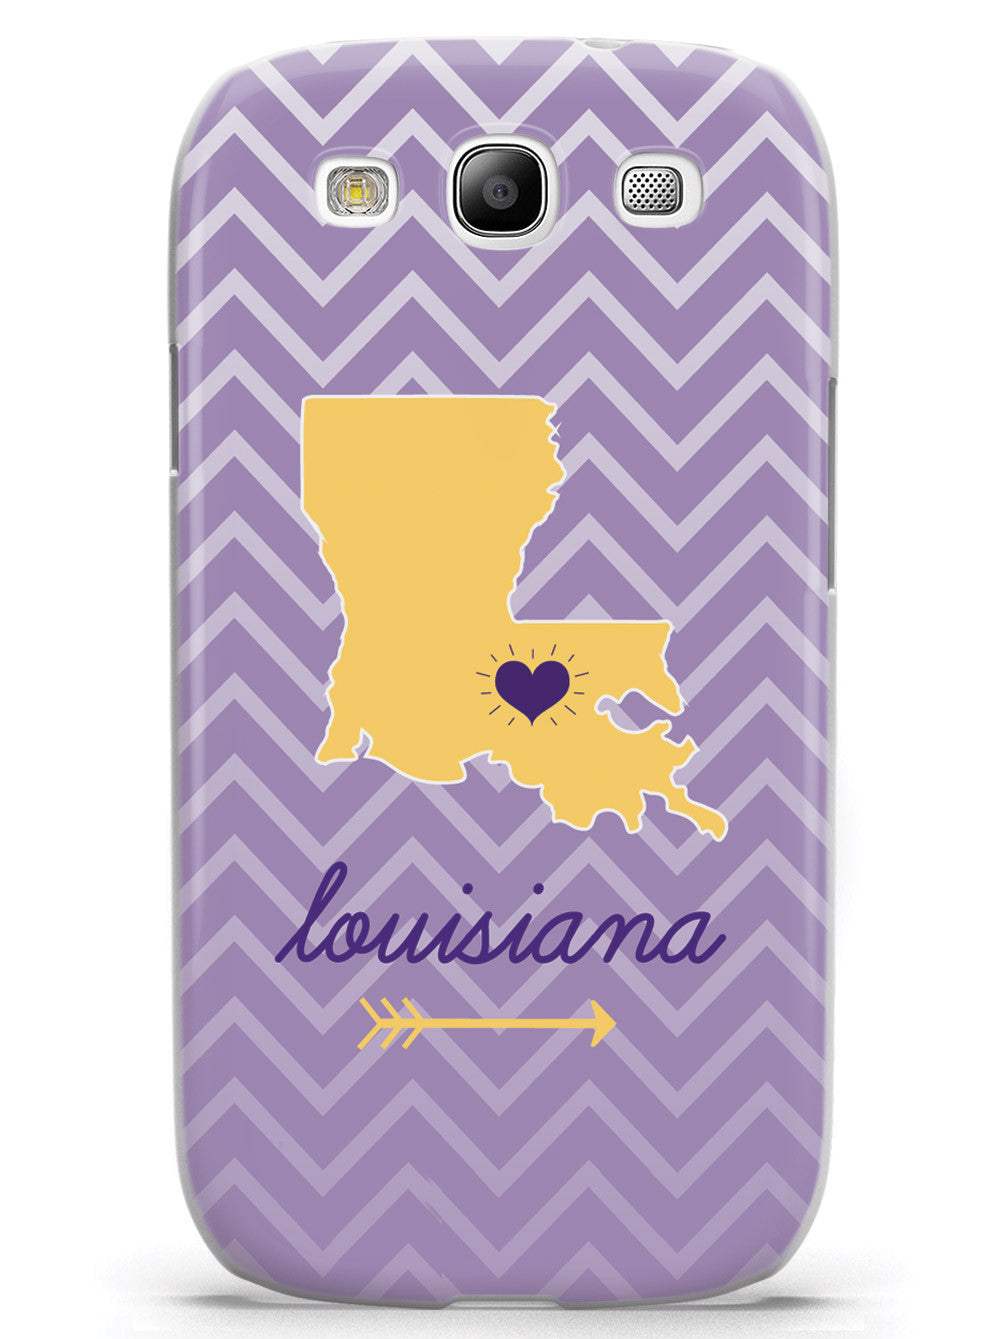 Louisiana Chevron Pattern State Case